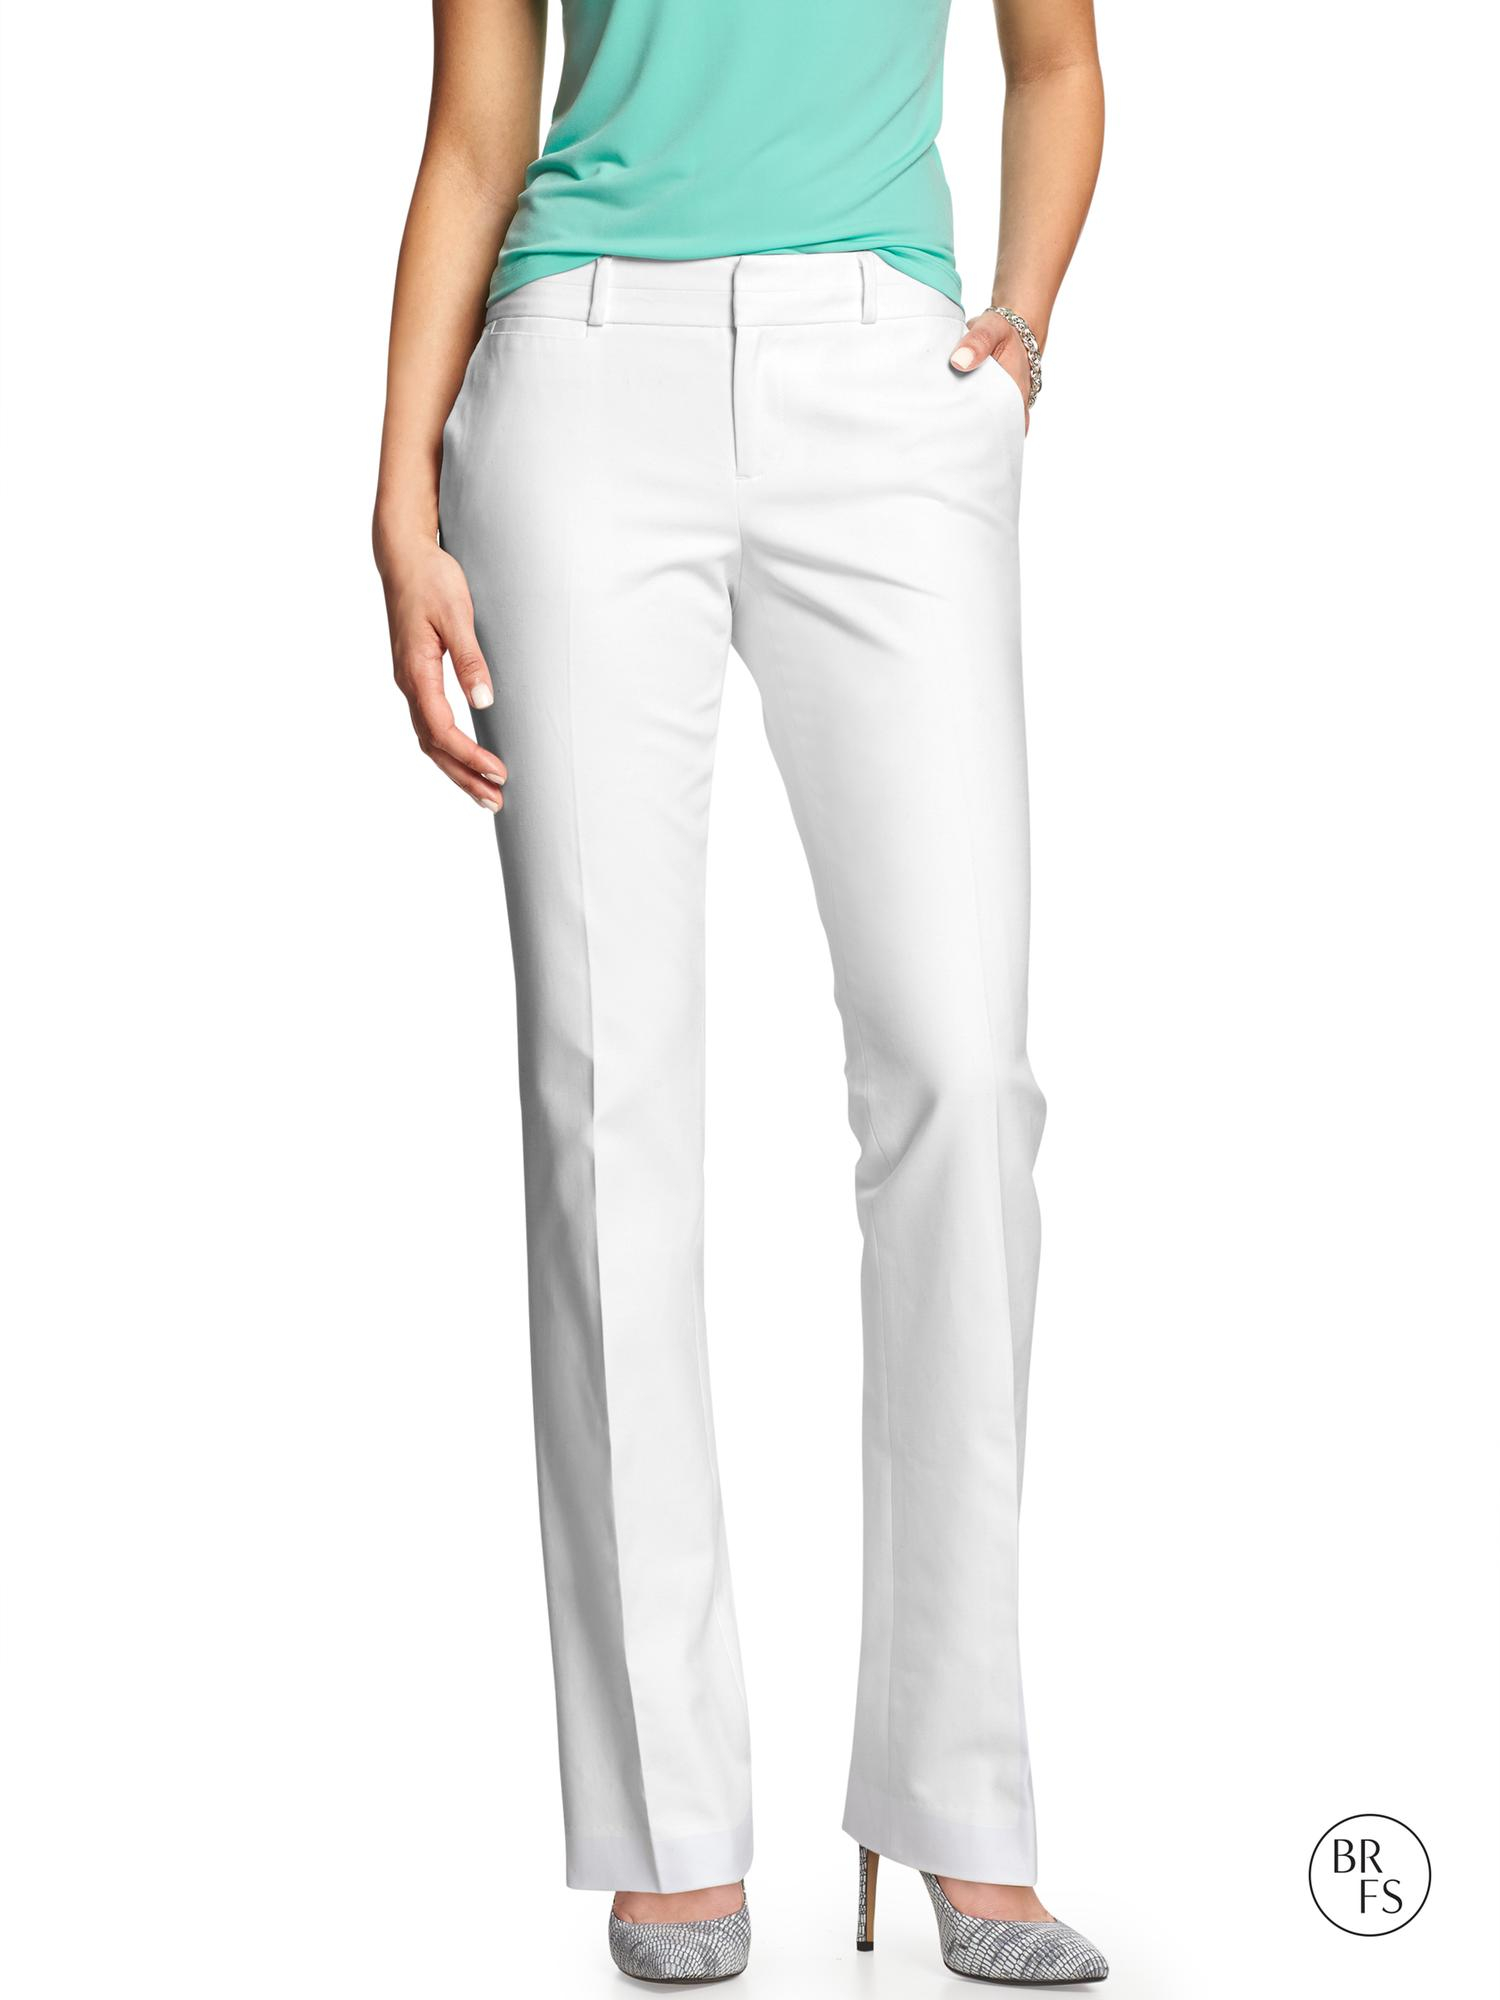 Shop Banana Republic's Ryan Slim Straight-Fit Machine-Washable Bi-Stretch Pant: Made with our favorite bi-stretch fabric with excellent stretch and recovery to smooth and sculpt your shape.,A sleek new pant in a modern fit. The Ryan offers a leg-lengthening slim-straight silhouette.,Straight-cut waistband. Zip fly with hook-and-bar closure.